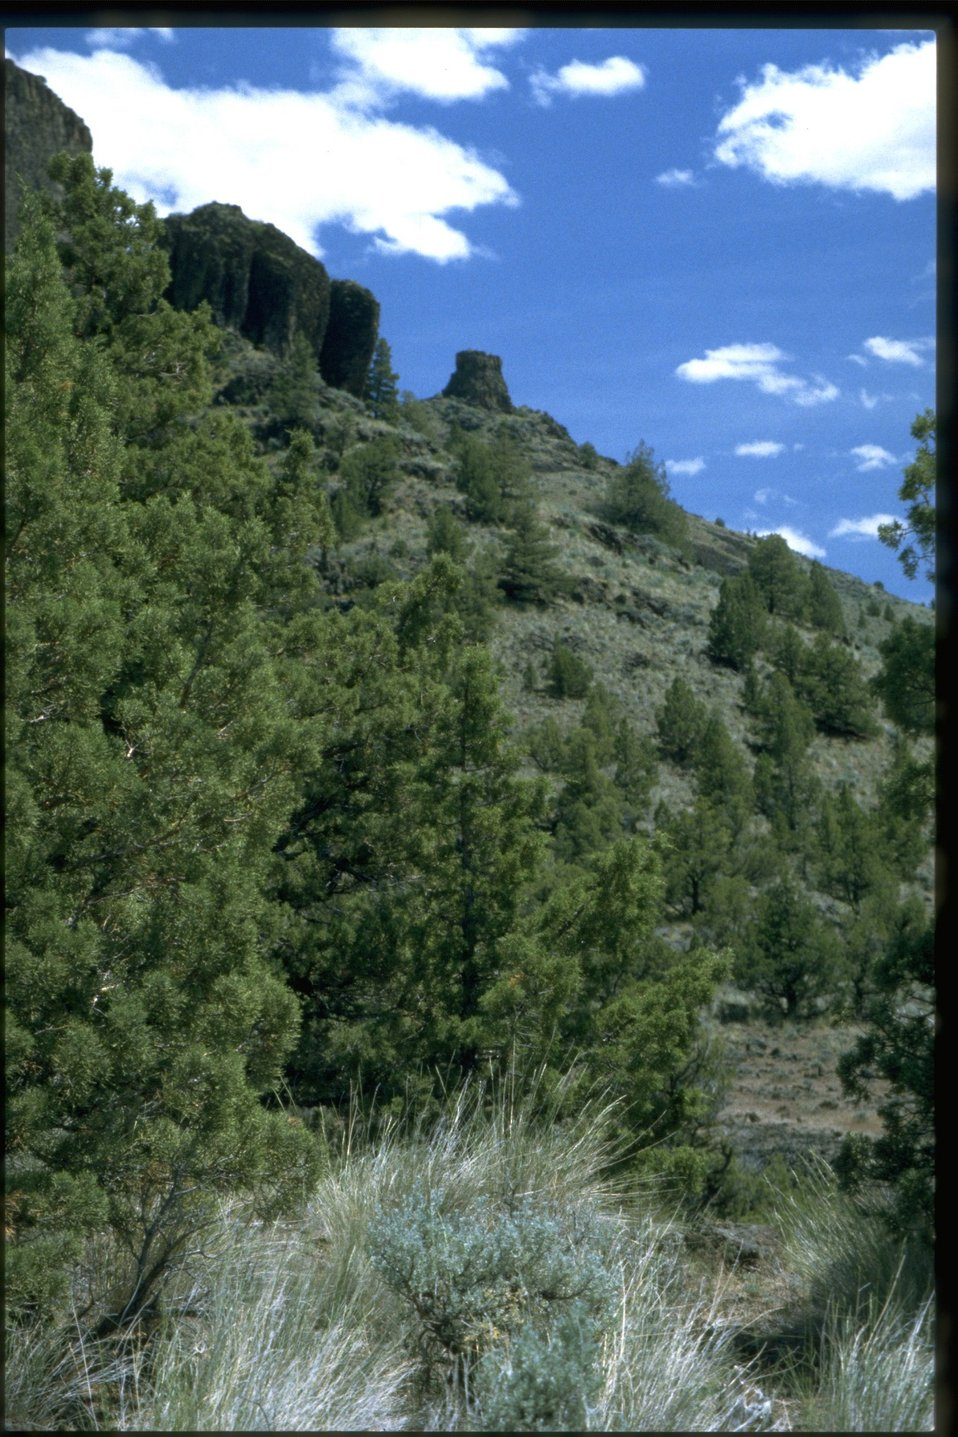 Chimney Rock, as viewed from the trail below.